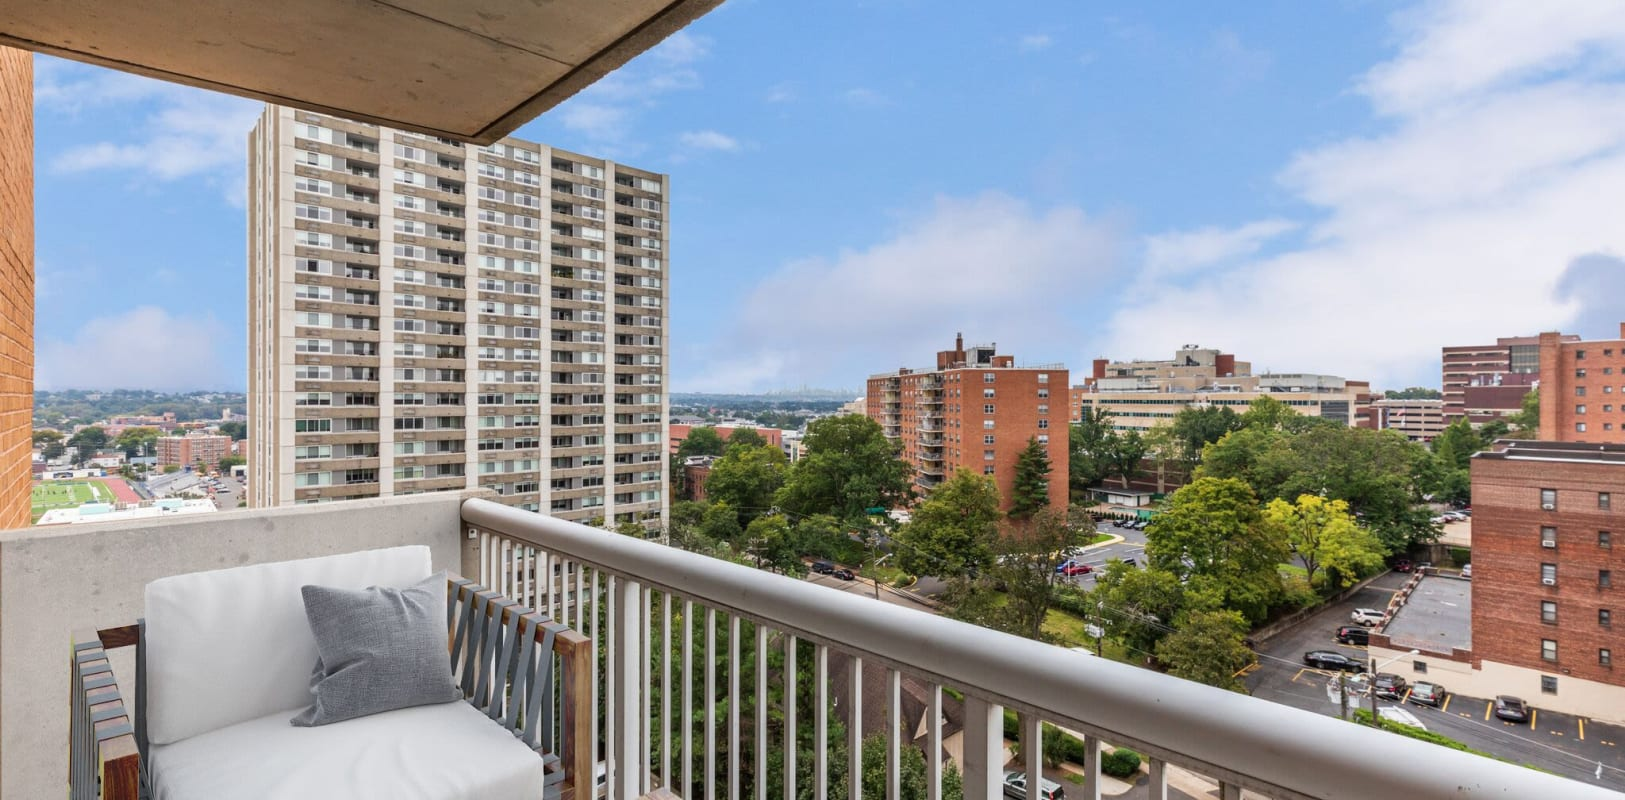 Private balcony with a view at 140 Prospect in Hackensack, New Jersey